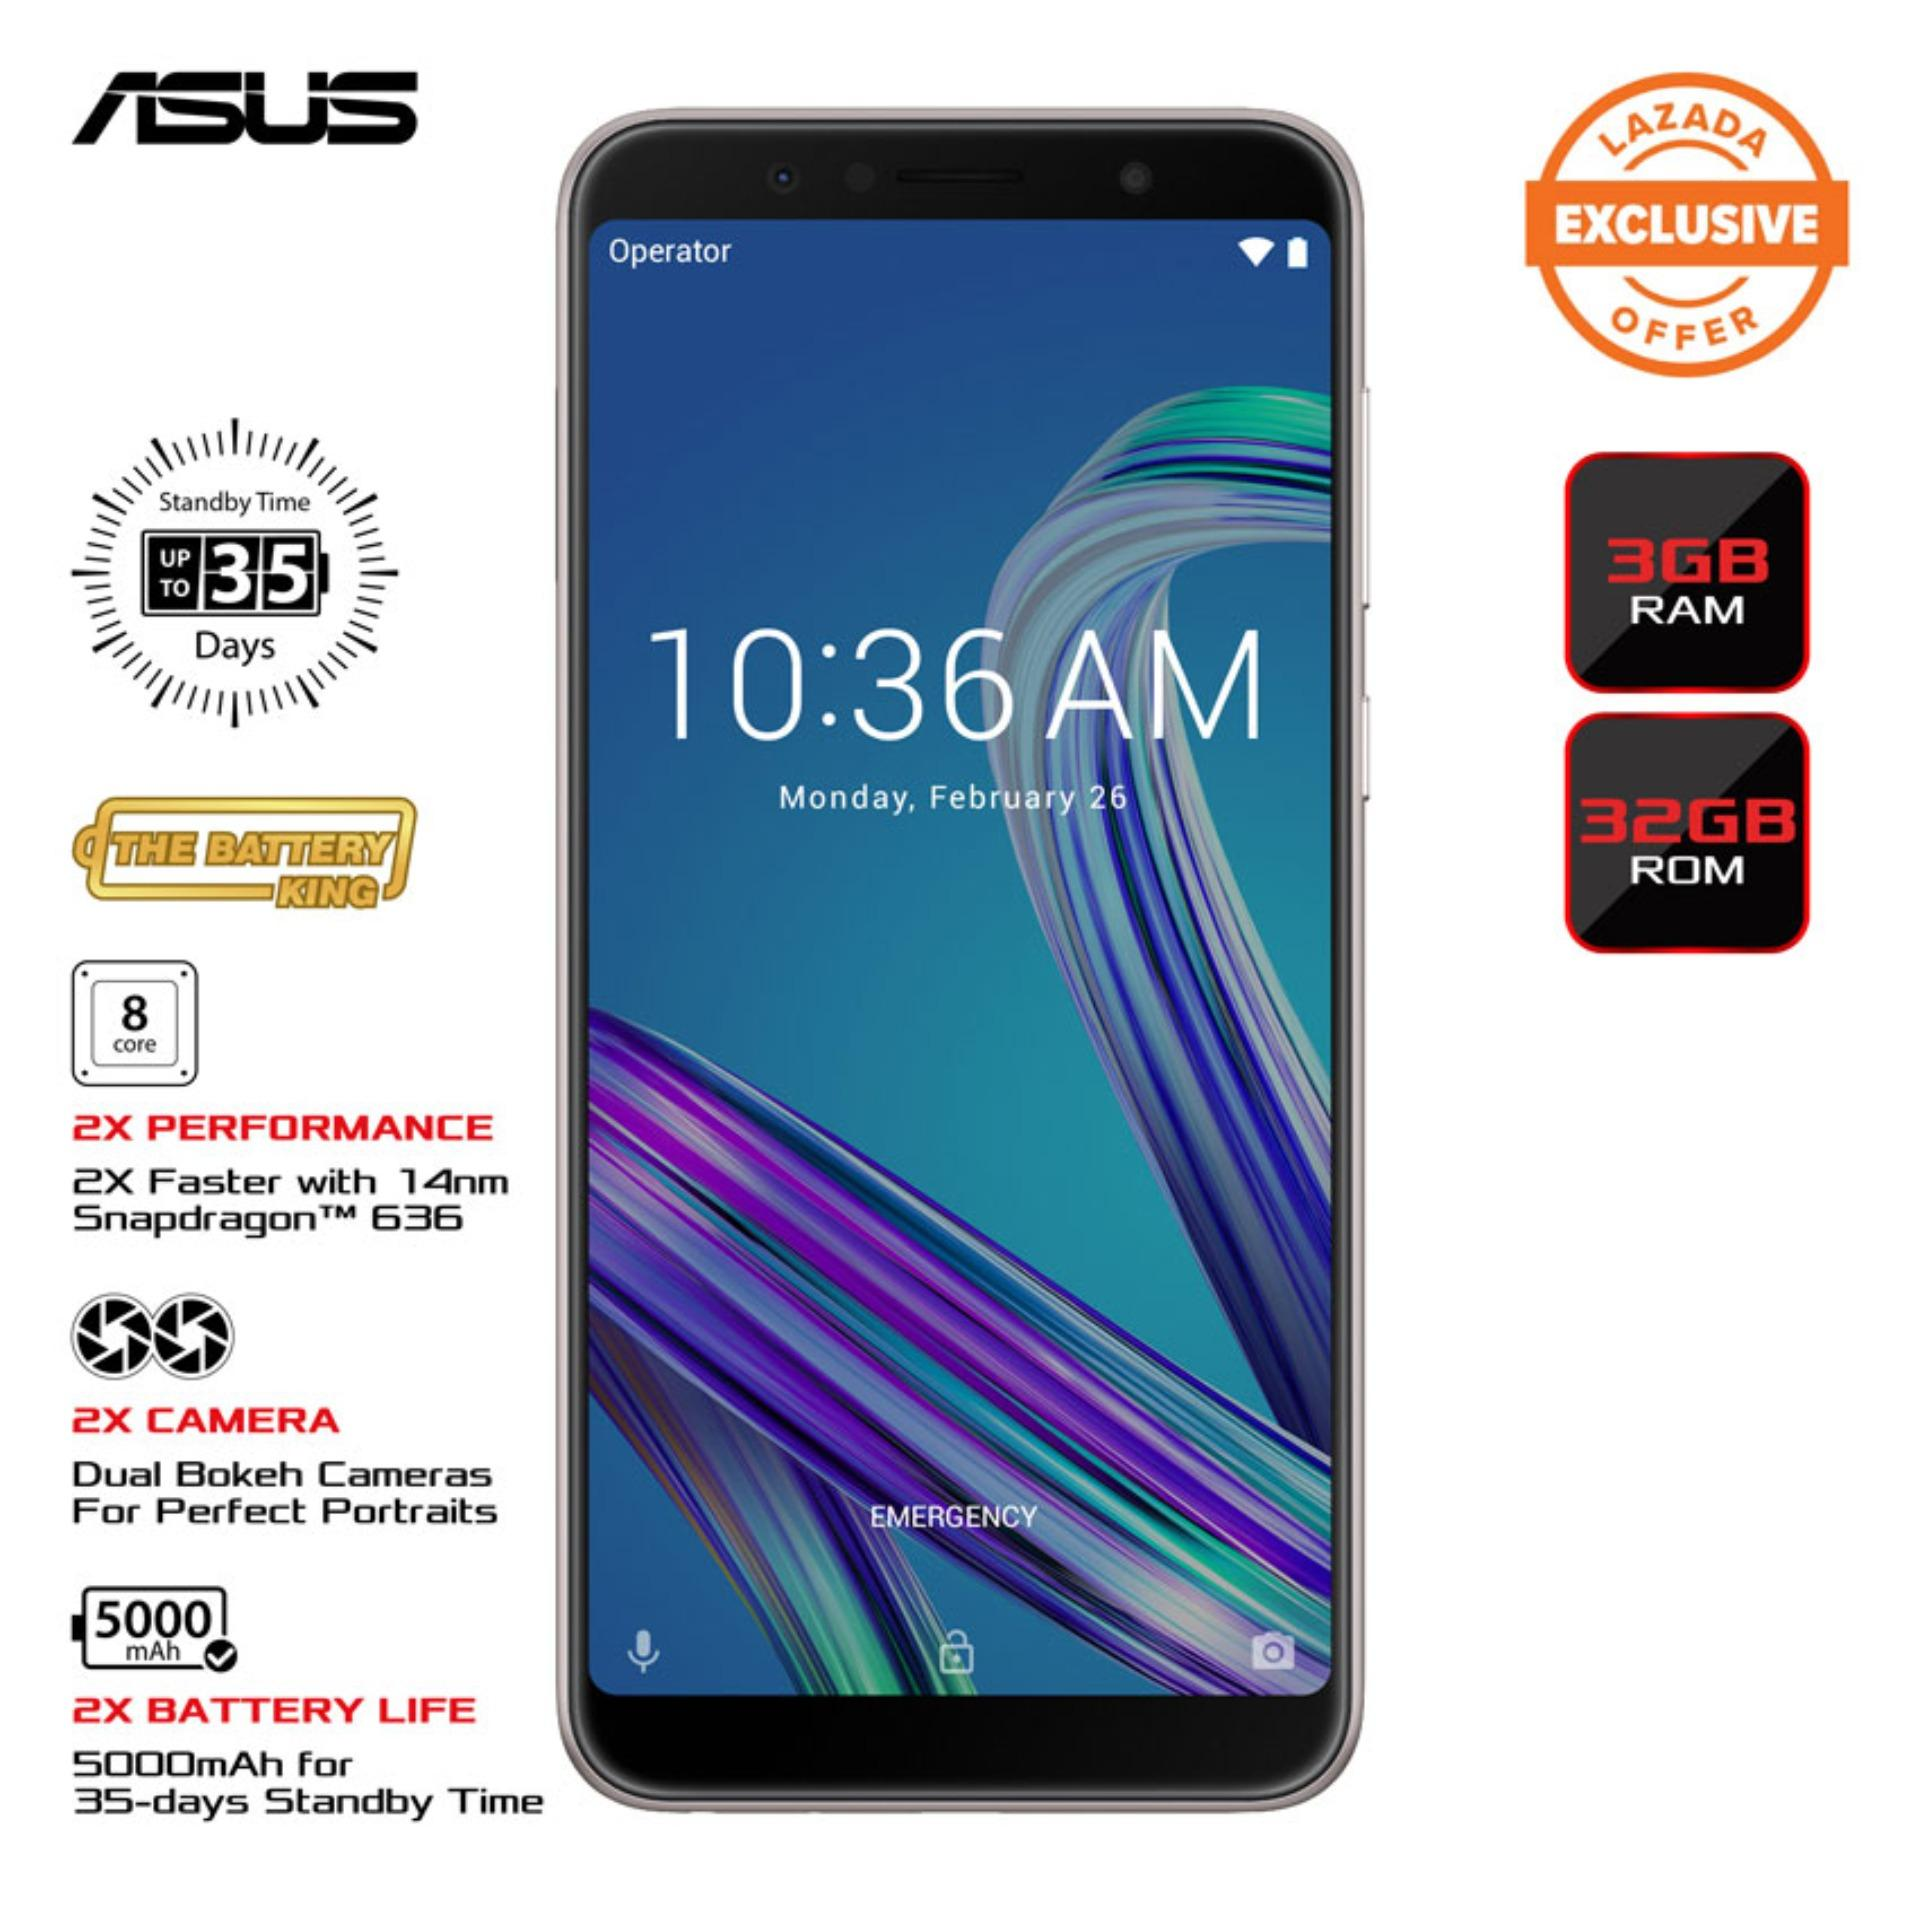 [EXCLUSIVE] Asus Zenfone Max Pro M1 (3GB + 32GB) – Black with Free Max Pro  Clear Case worth 699